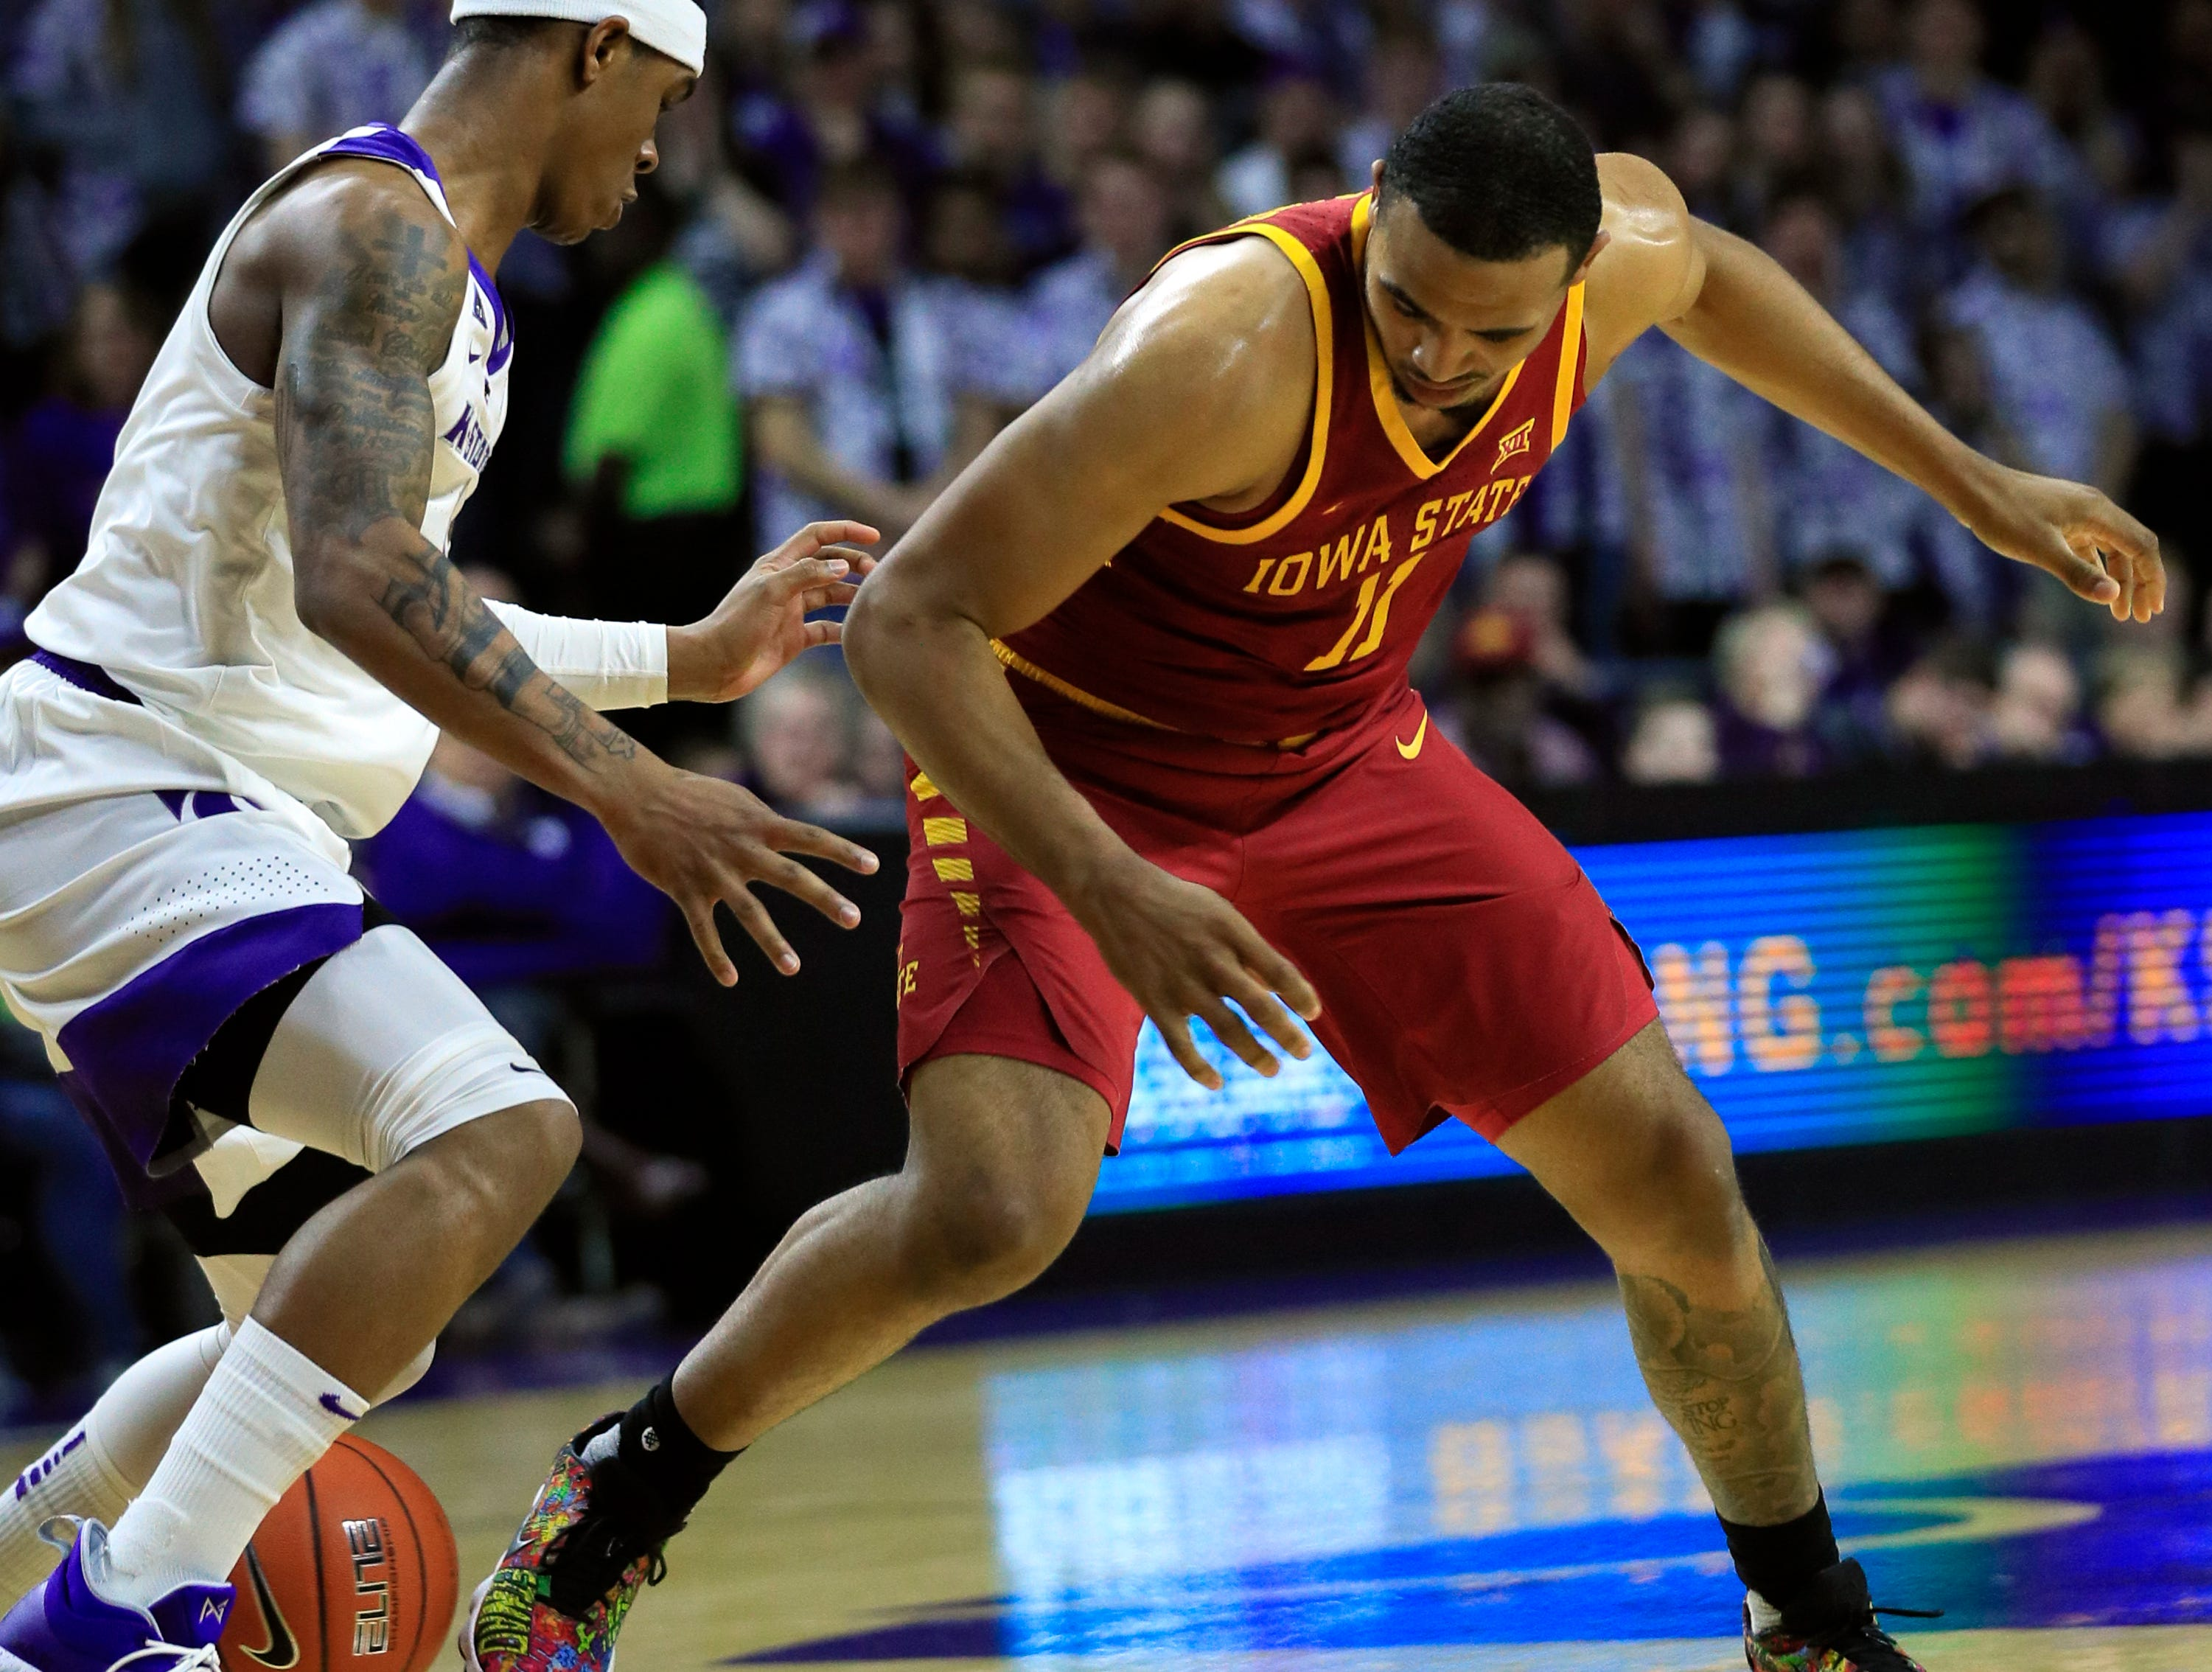 Kansas State guard Shaun Neal-Williams, left, forces a turnover from Iowa State guard Talen Horton-Tucker (11) during the first half of an NCAA college basketball game in Manhattan, Kan., Saturday, Feb. 16, 2019.